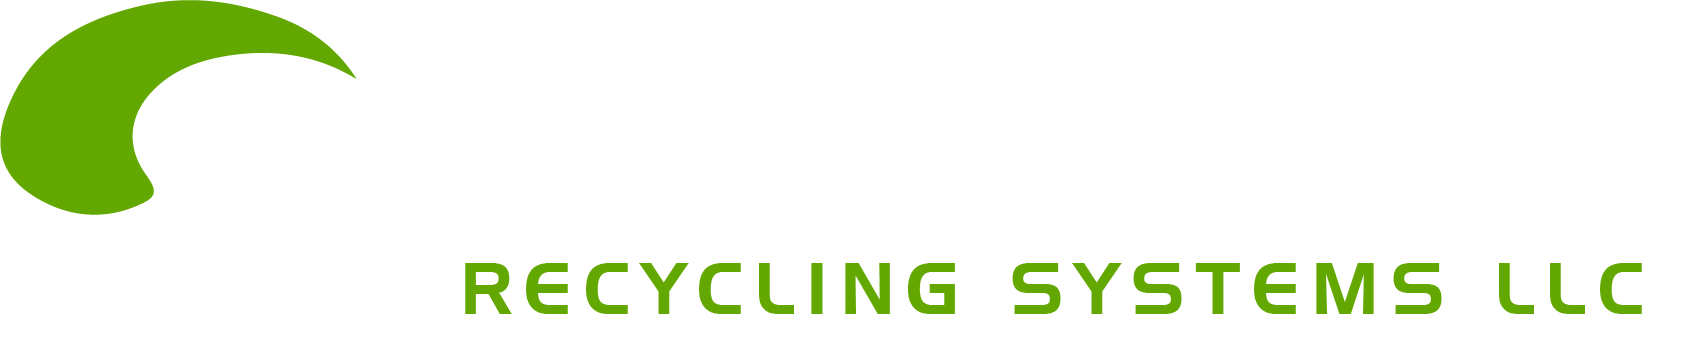 Solvent Recycling Systems, LLC